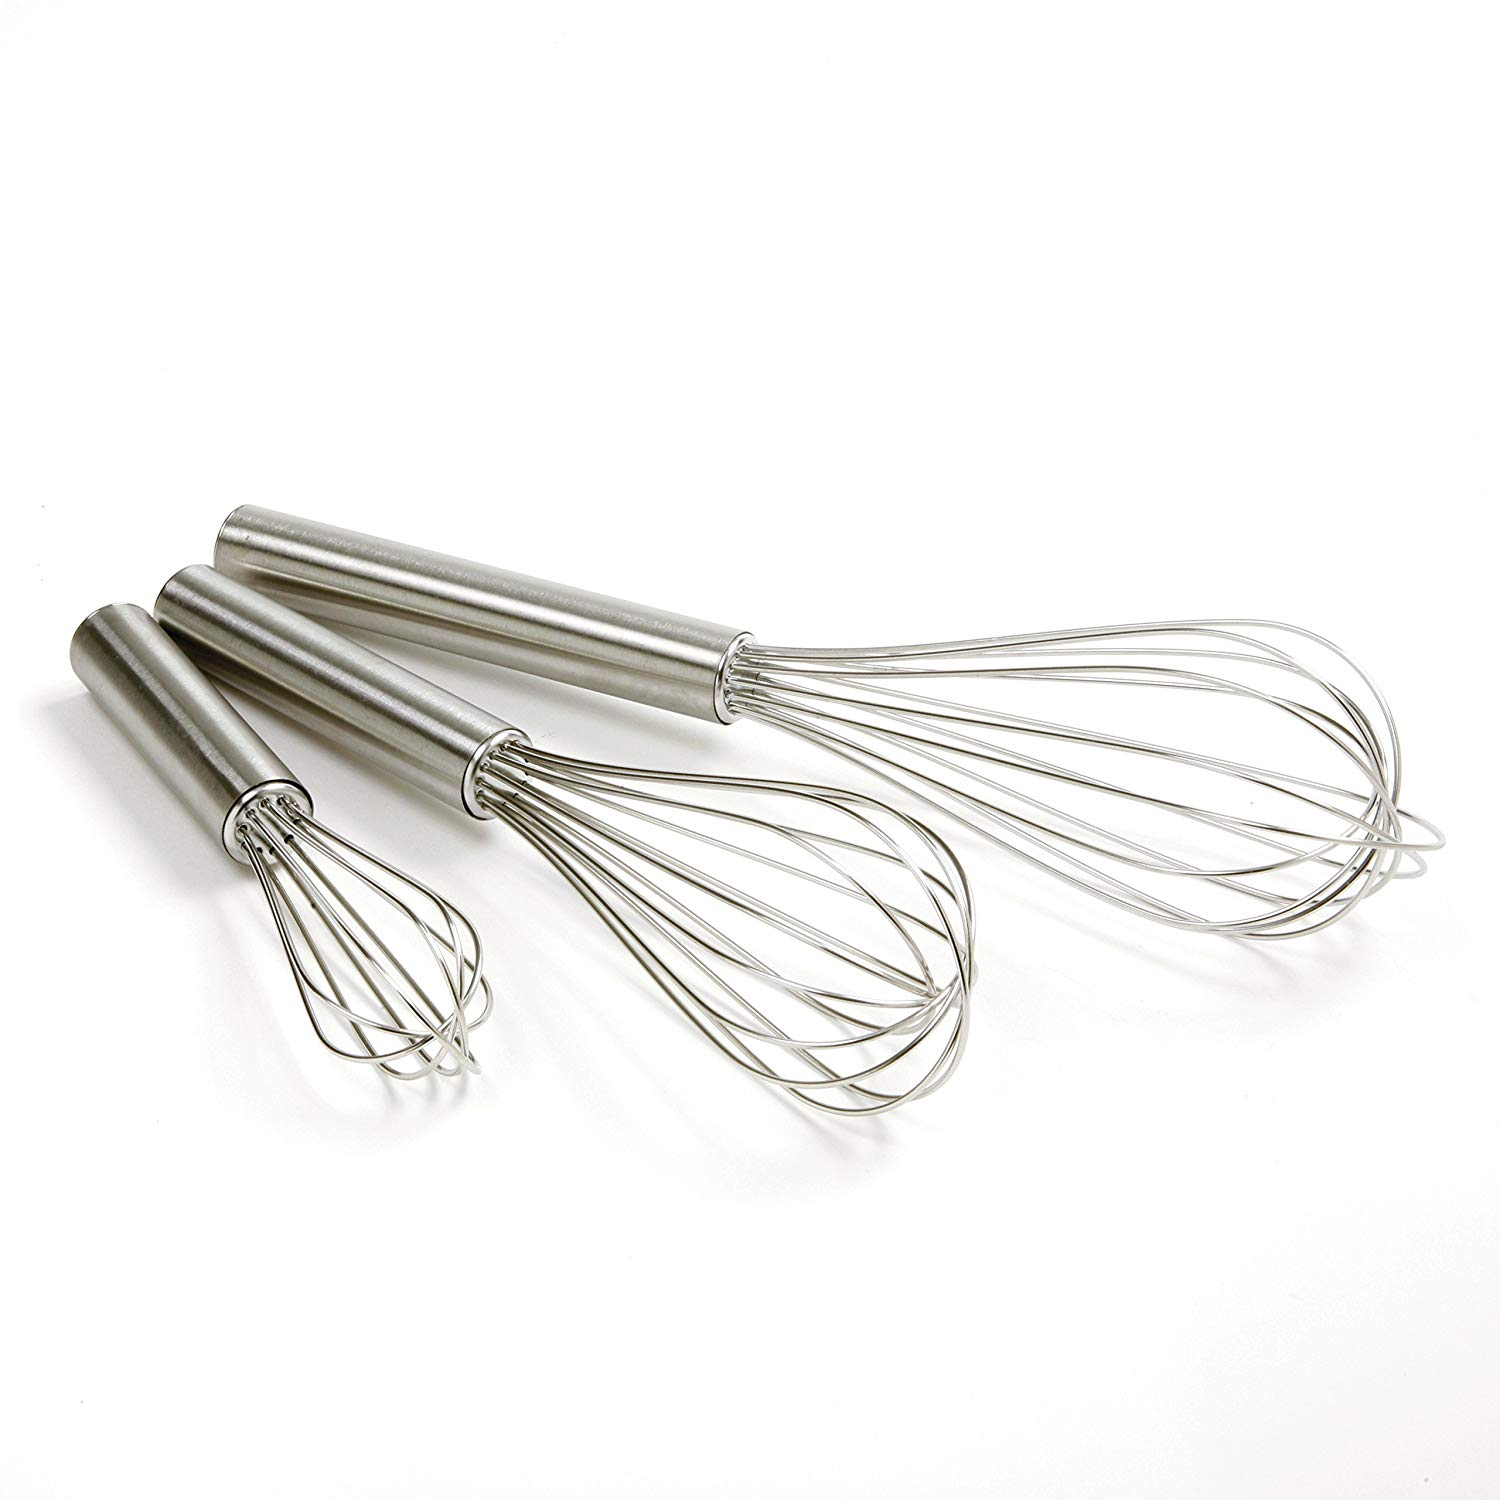 Norpro stainless steel whisks